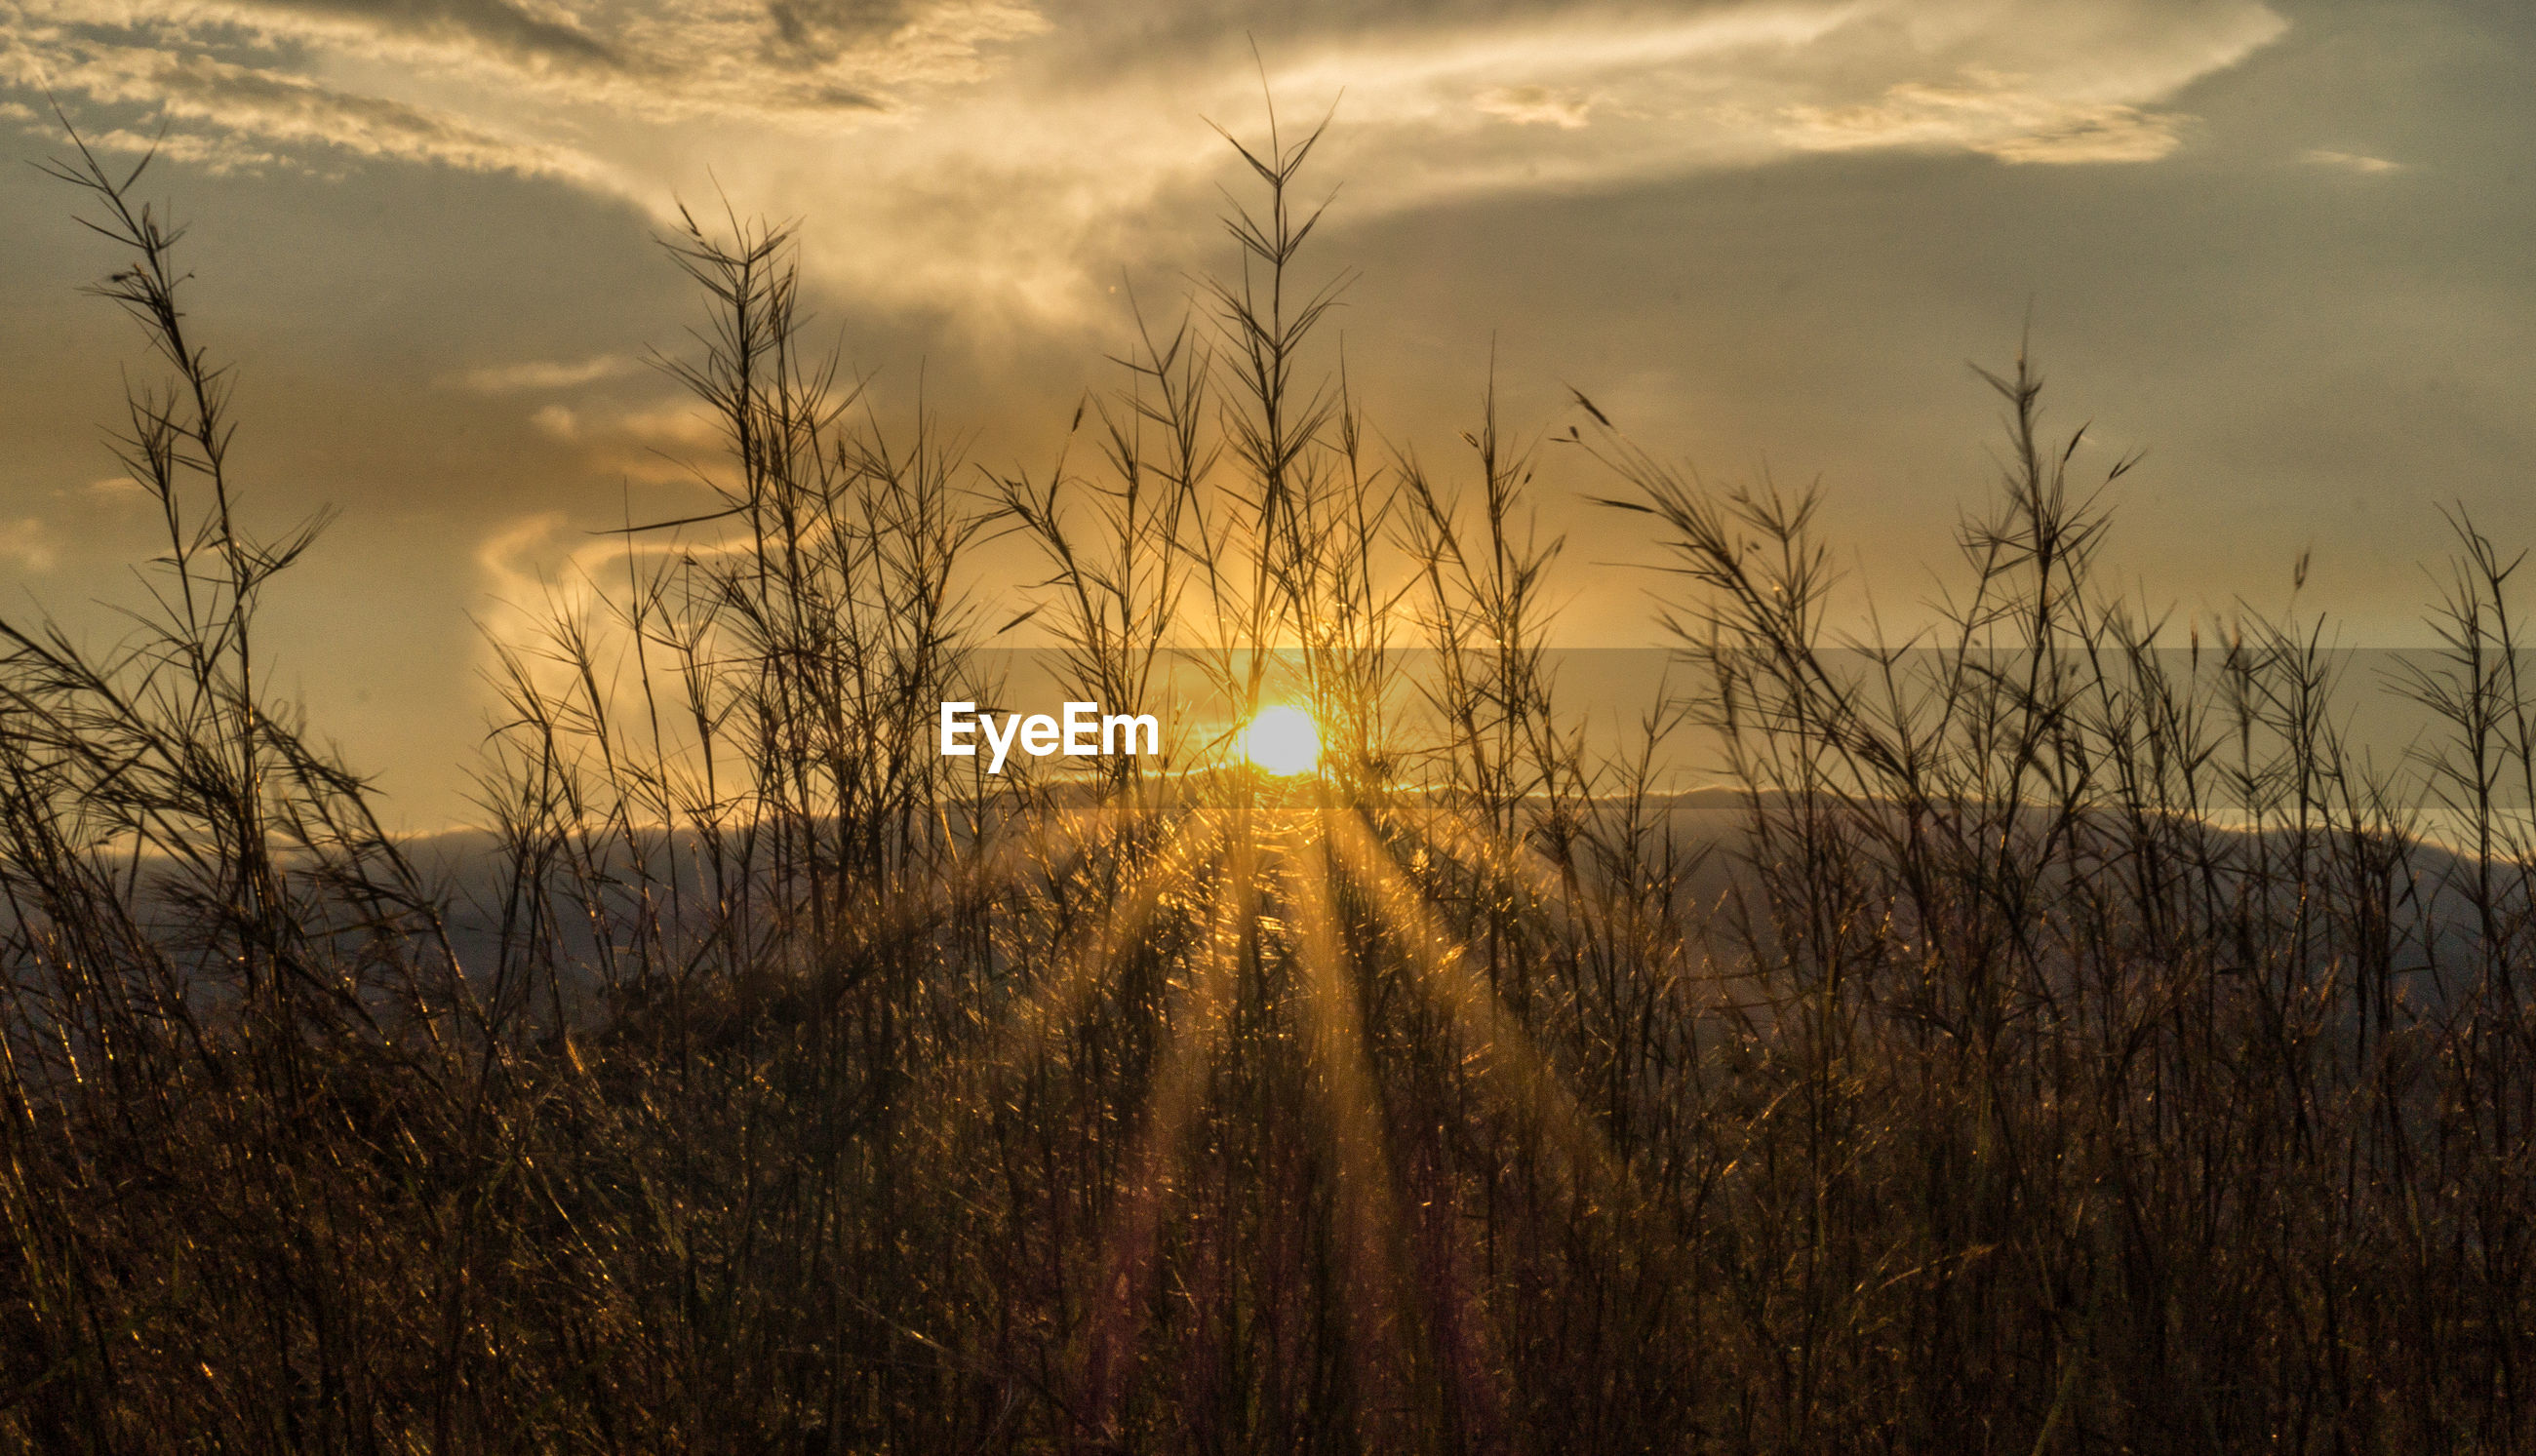 SCENIC VIEW OF SUNSET OVER FIELD